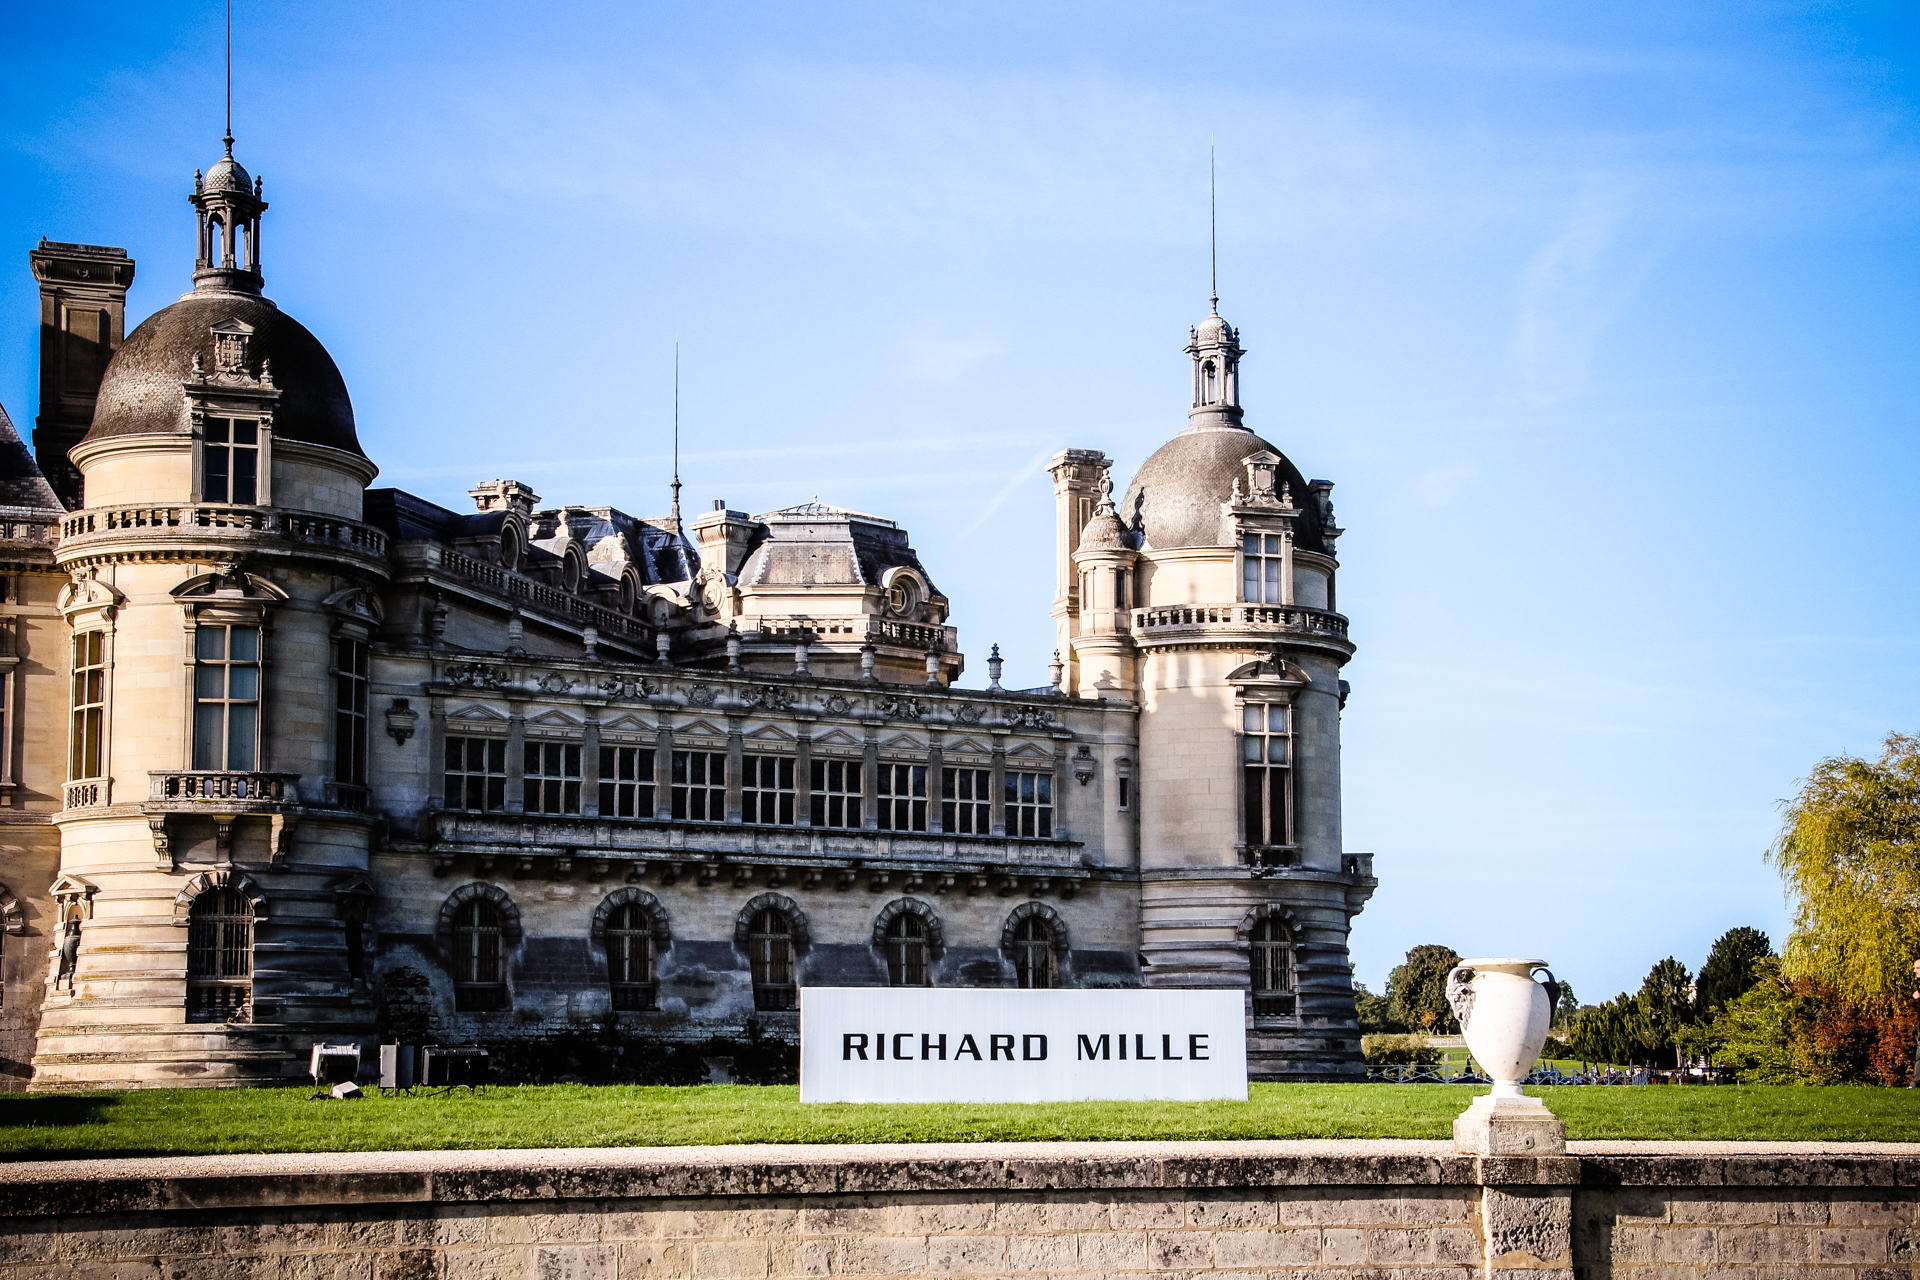 Château Chantilly Arts & Elegance Richard Mille